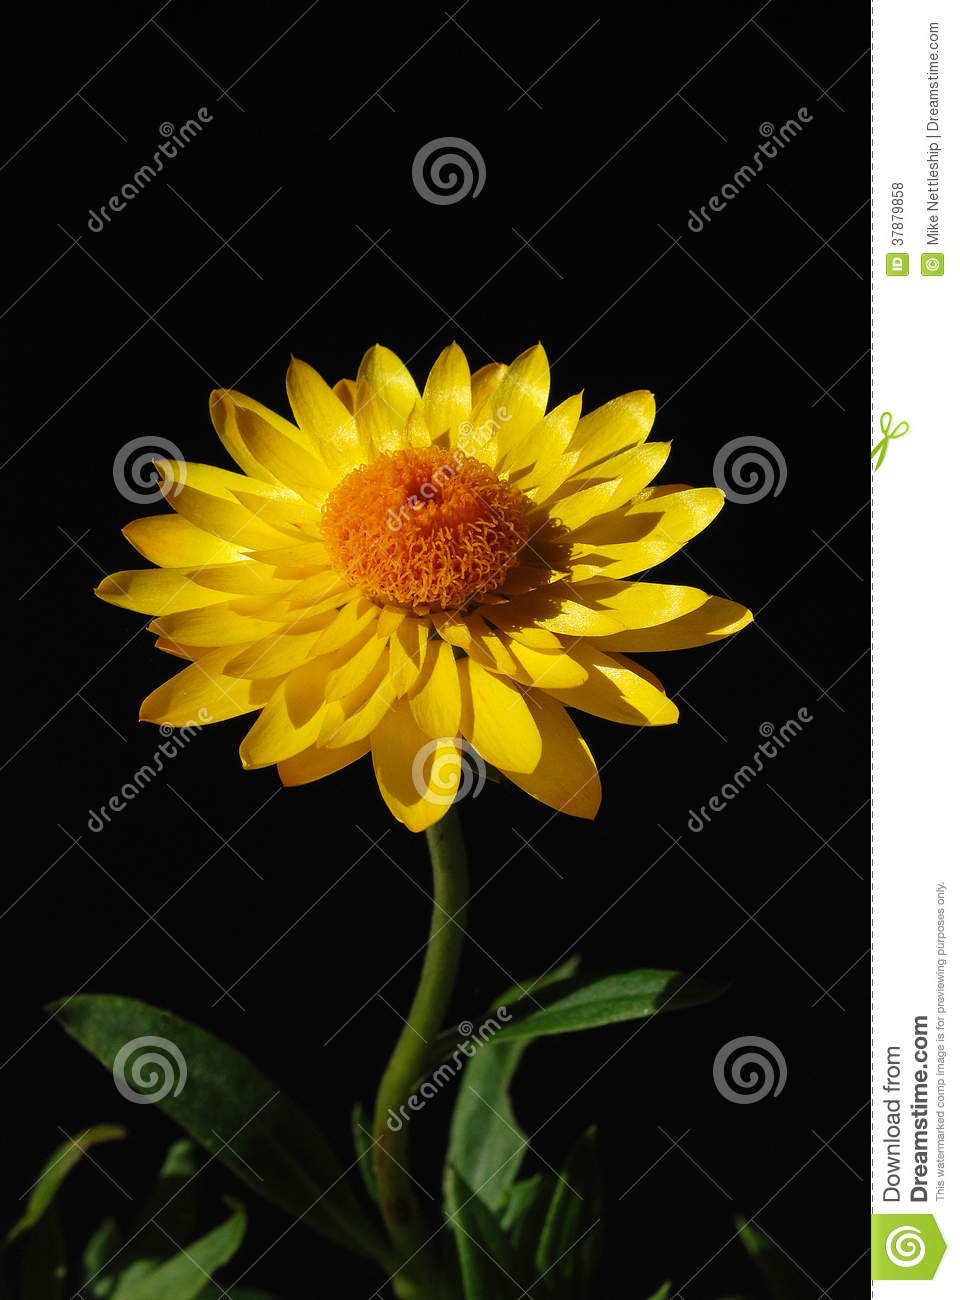 Yellow Flower With Orange Centre Stock Photo Image Of Pollen